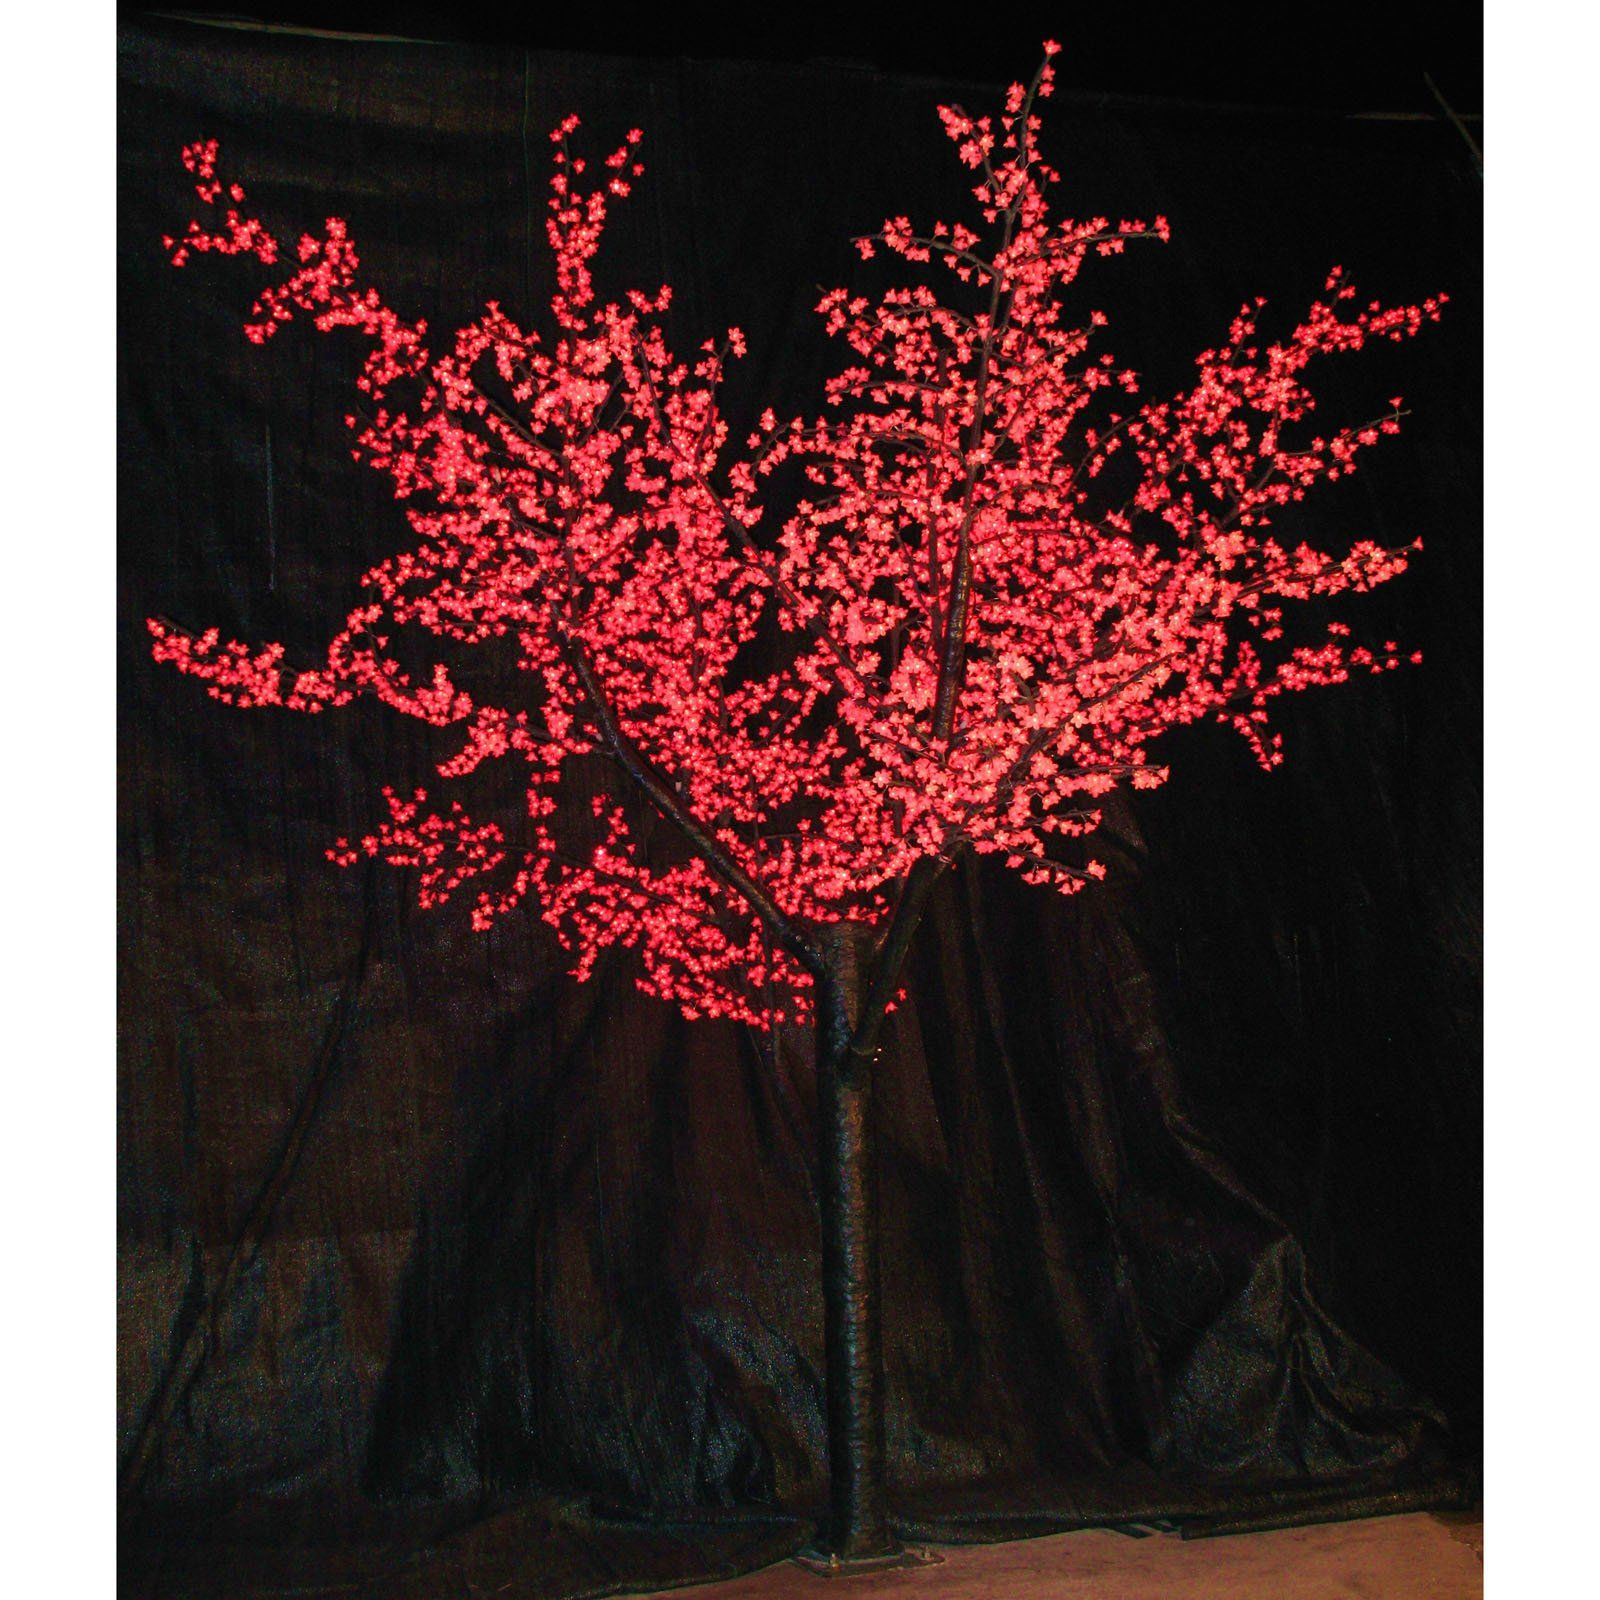 Have To Have It 12 Ft Pre Lit Led Cherry Blossom Tree Red 5999 99 Cherry Blossom Tree Led Lights Event Decor Direct